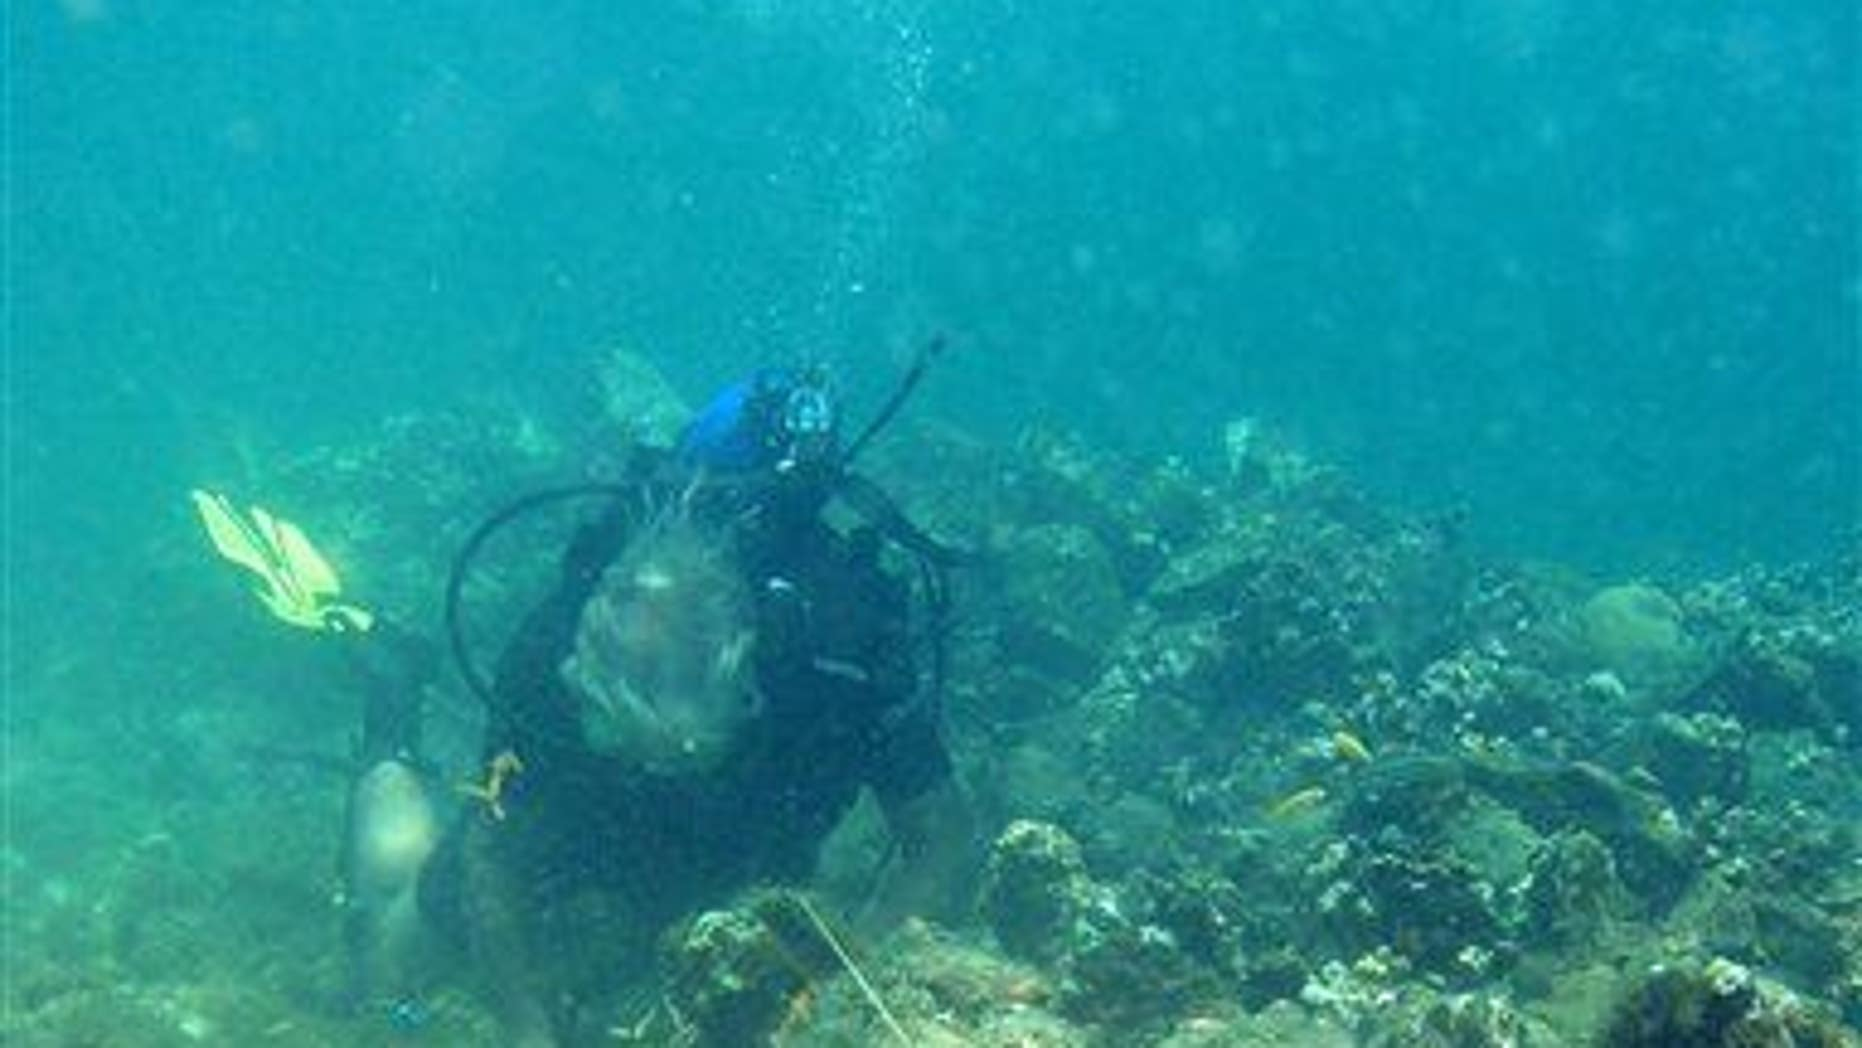 In this May 2003 photo, a diver measures a cannon adjacent to a ballast pile off the coast of Haiti at a site explorer Barry Clifford says could be the wreckage of Columbus's vessel the Santa Maria.